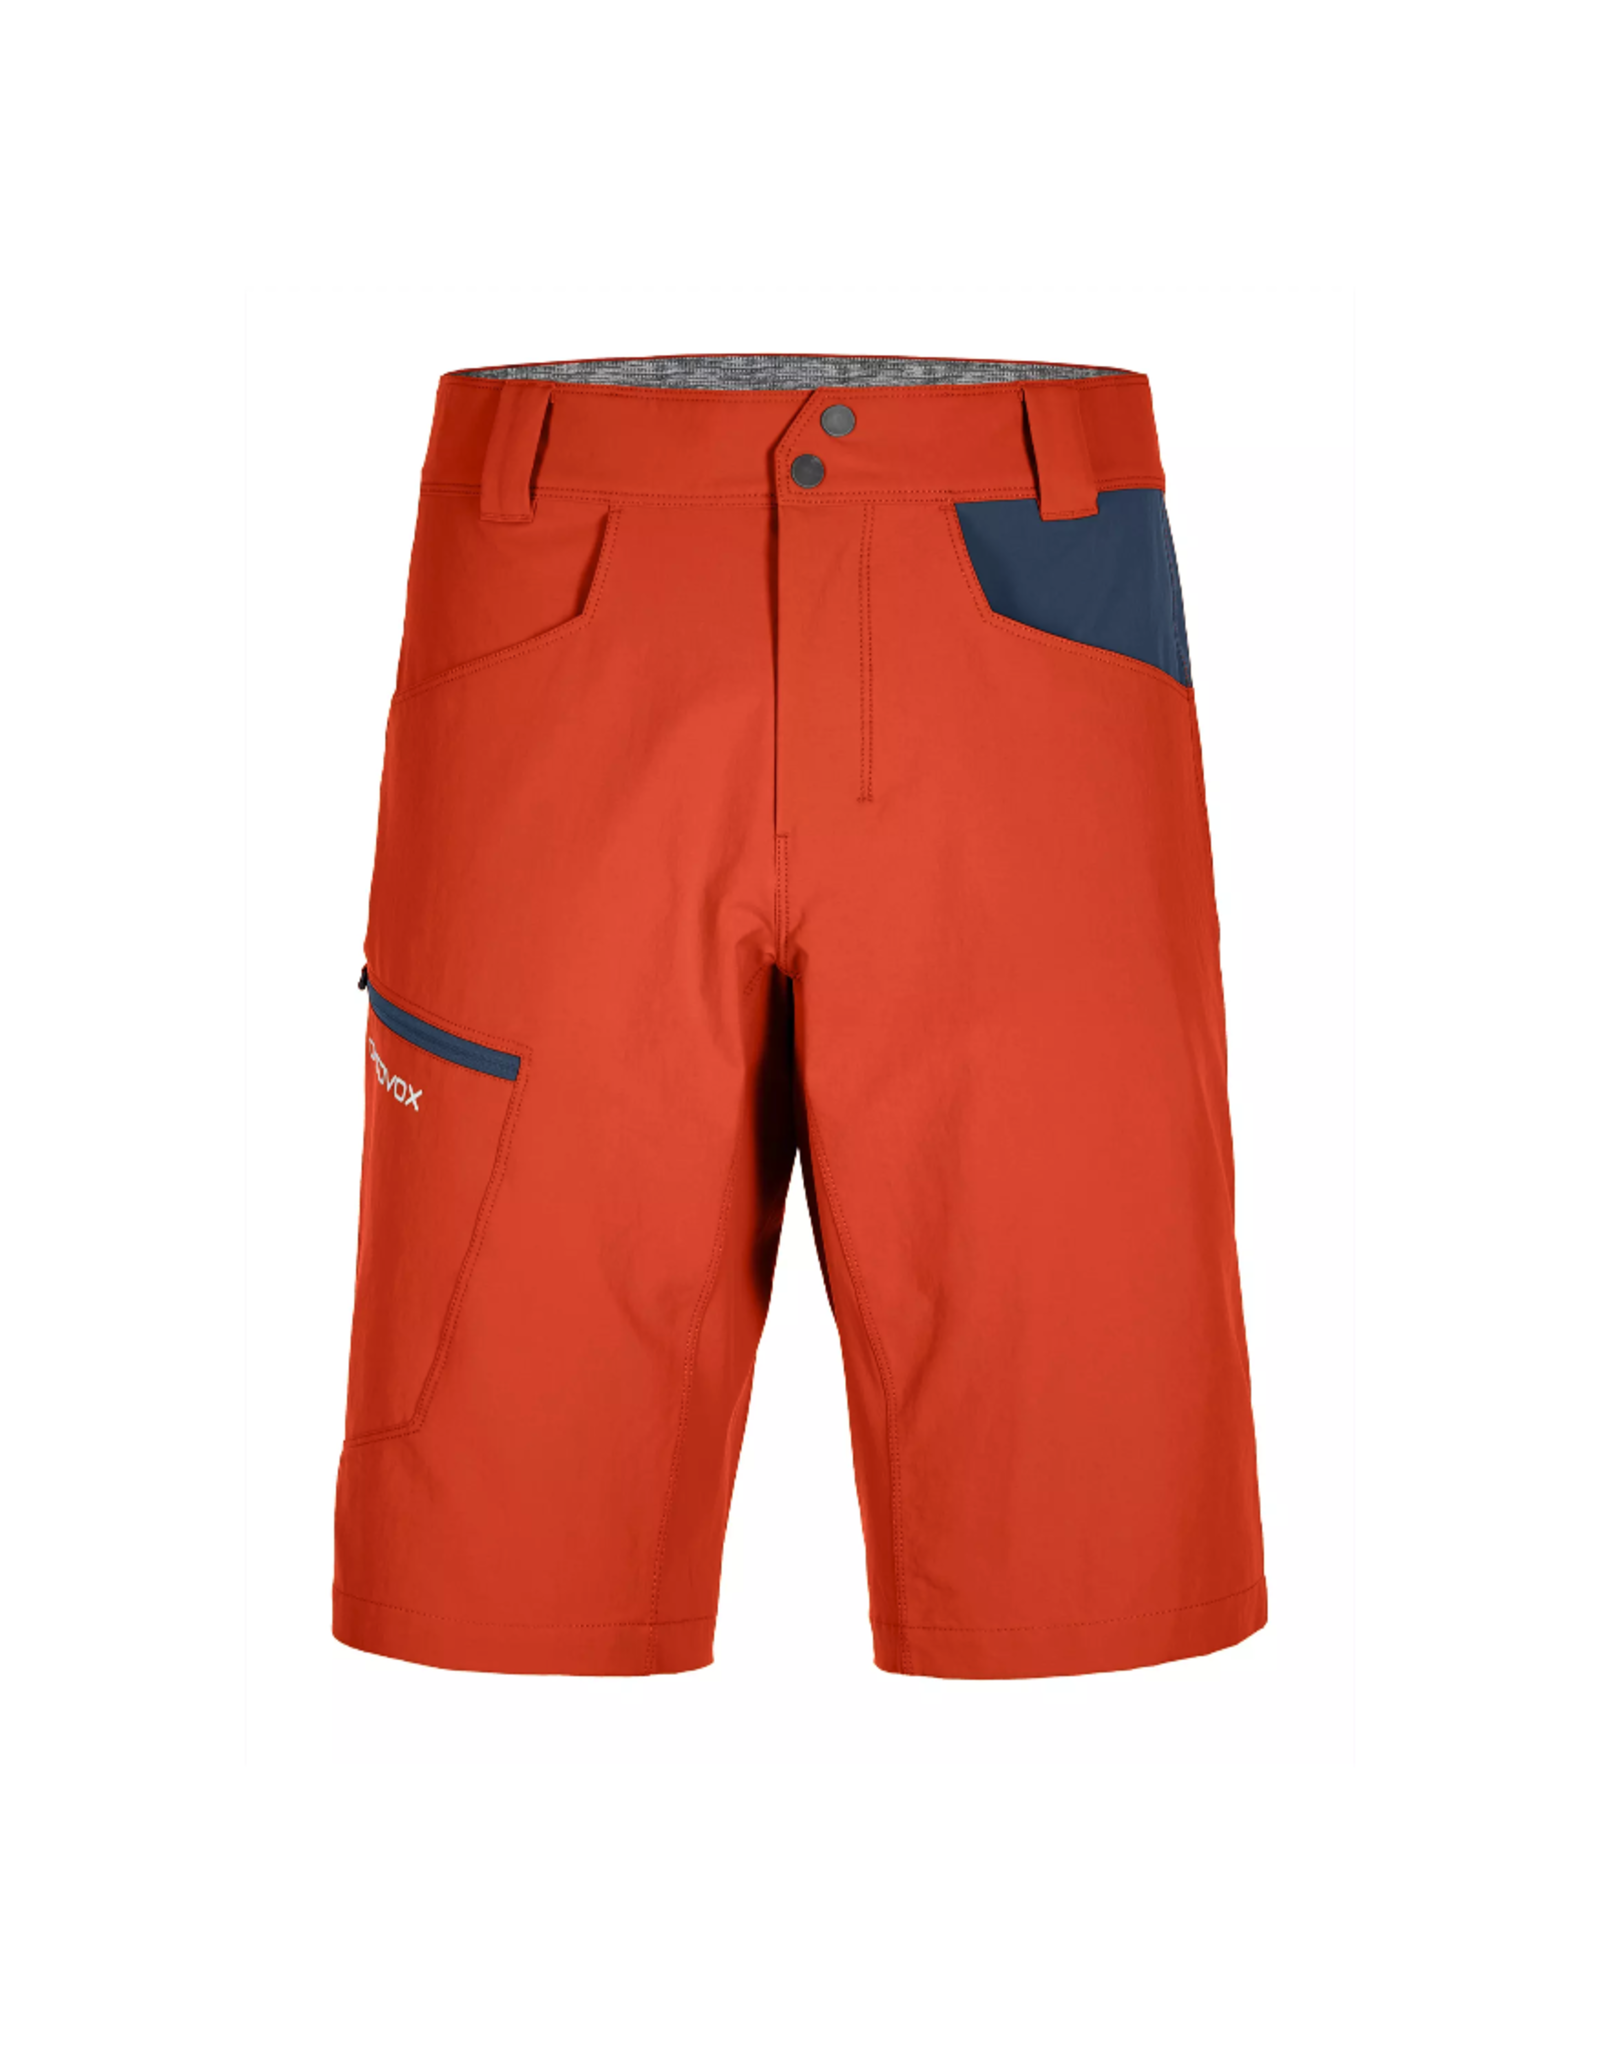 Pelmo Shorts - Desert Orange